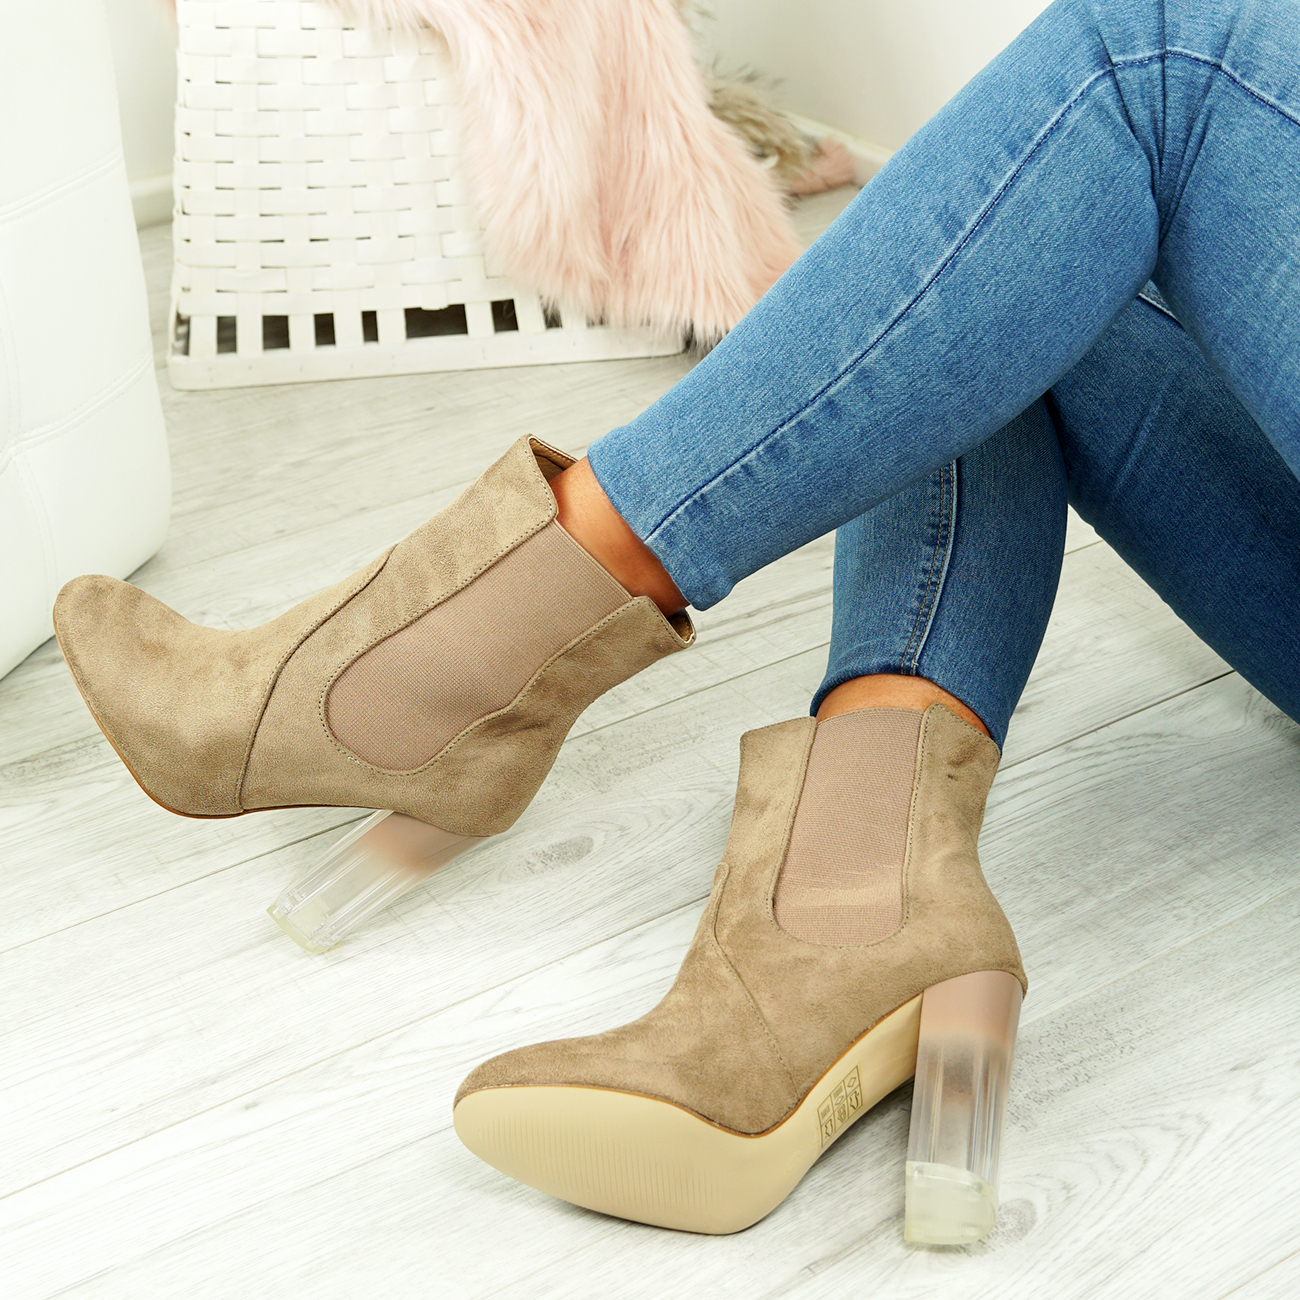 NEW-WOMENS-LADIES-CHELSEA-ANKLE-BOOTS-CLEAR-BLOCK-HIGH-HEELS-SHOES-SIZE-UK